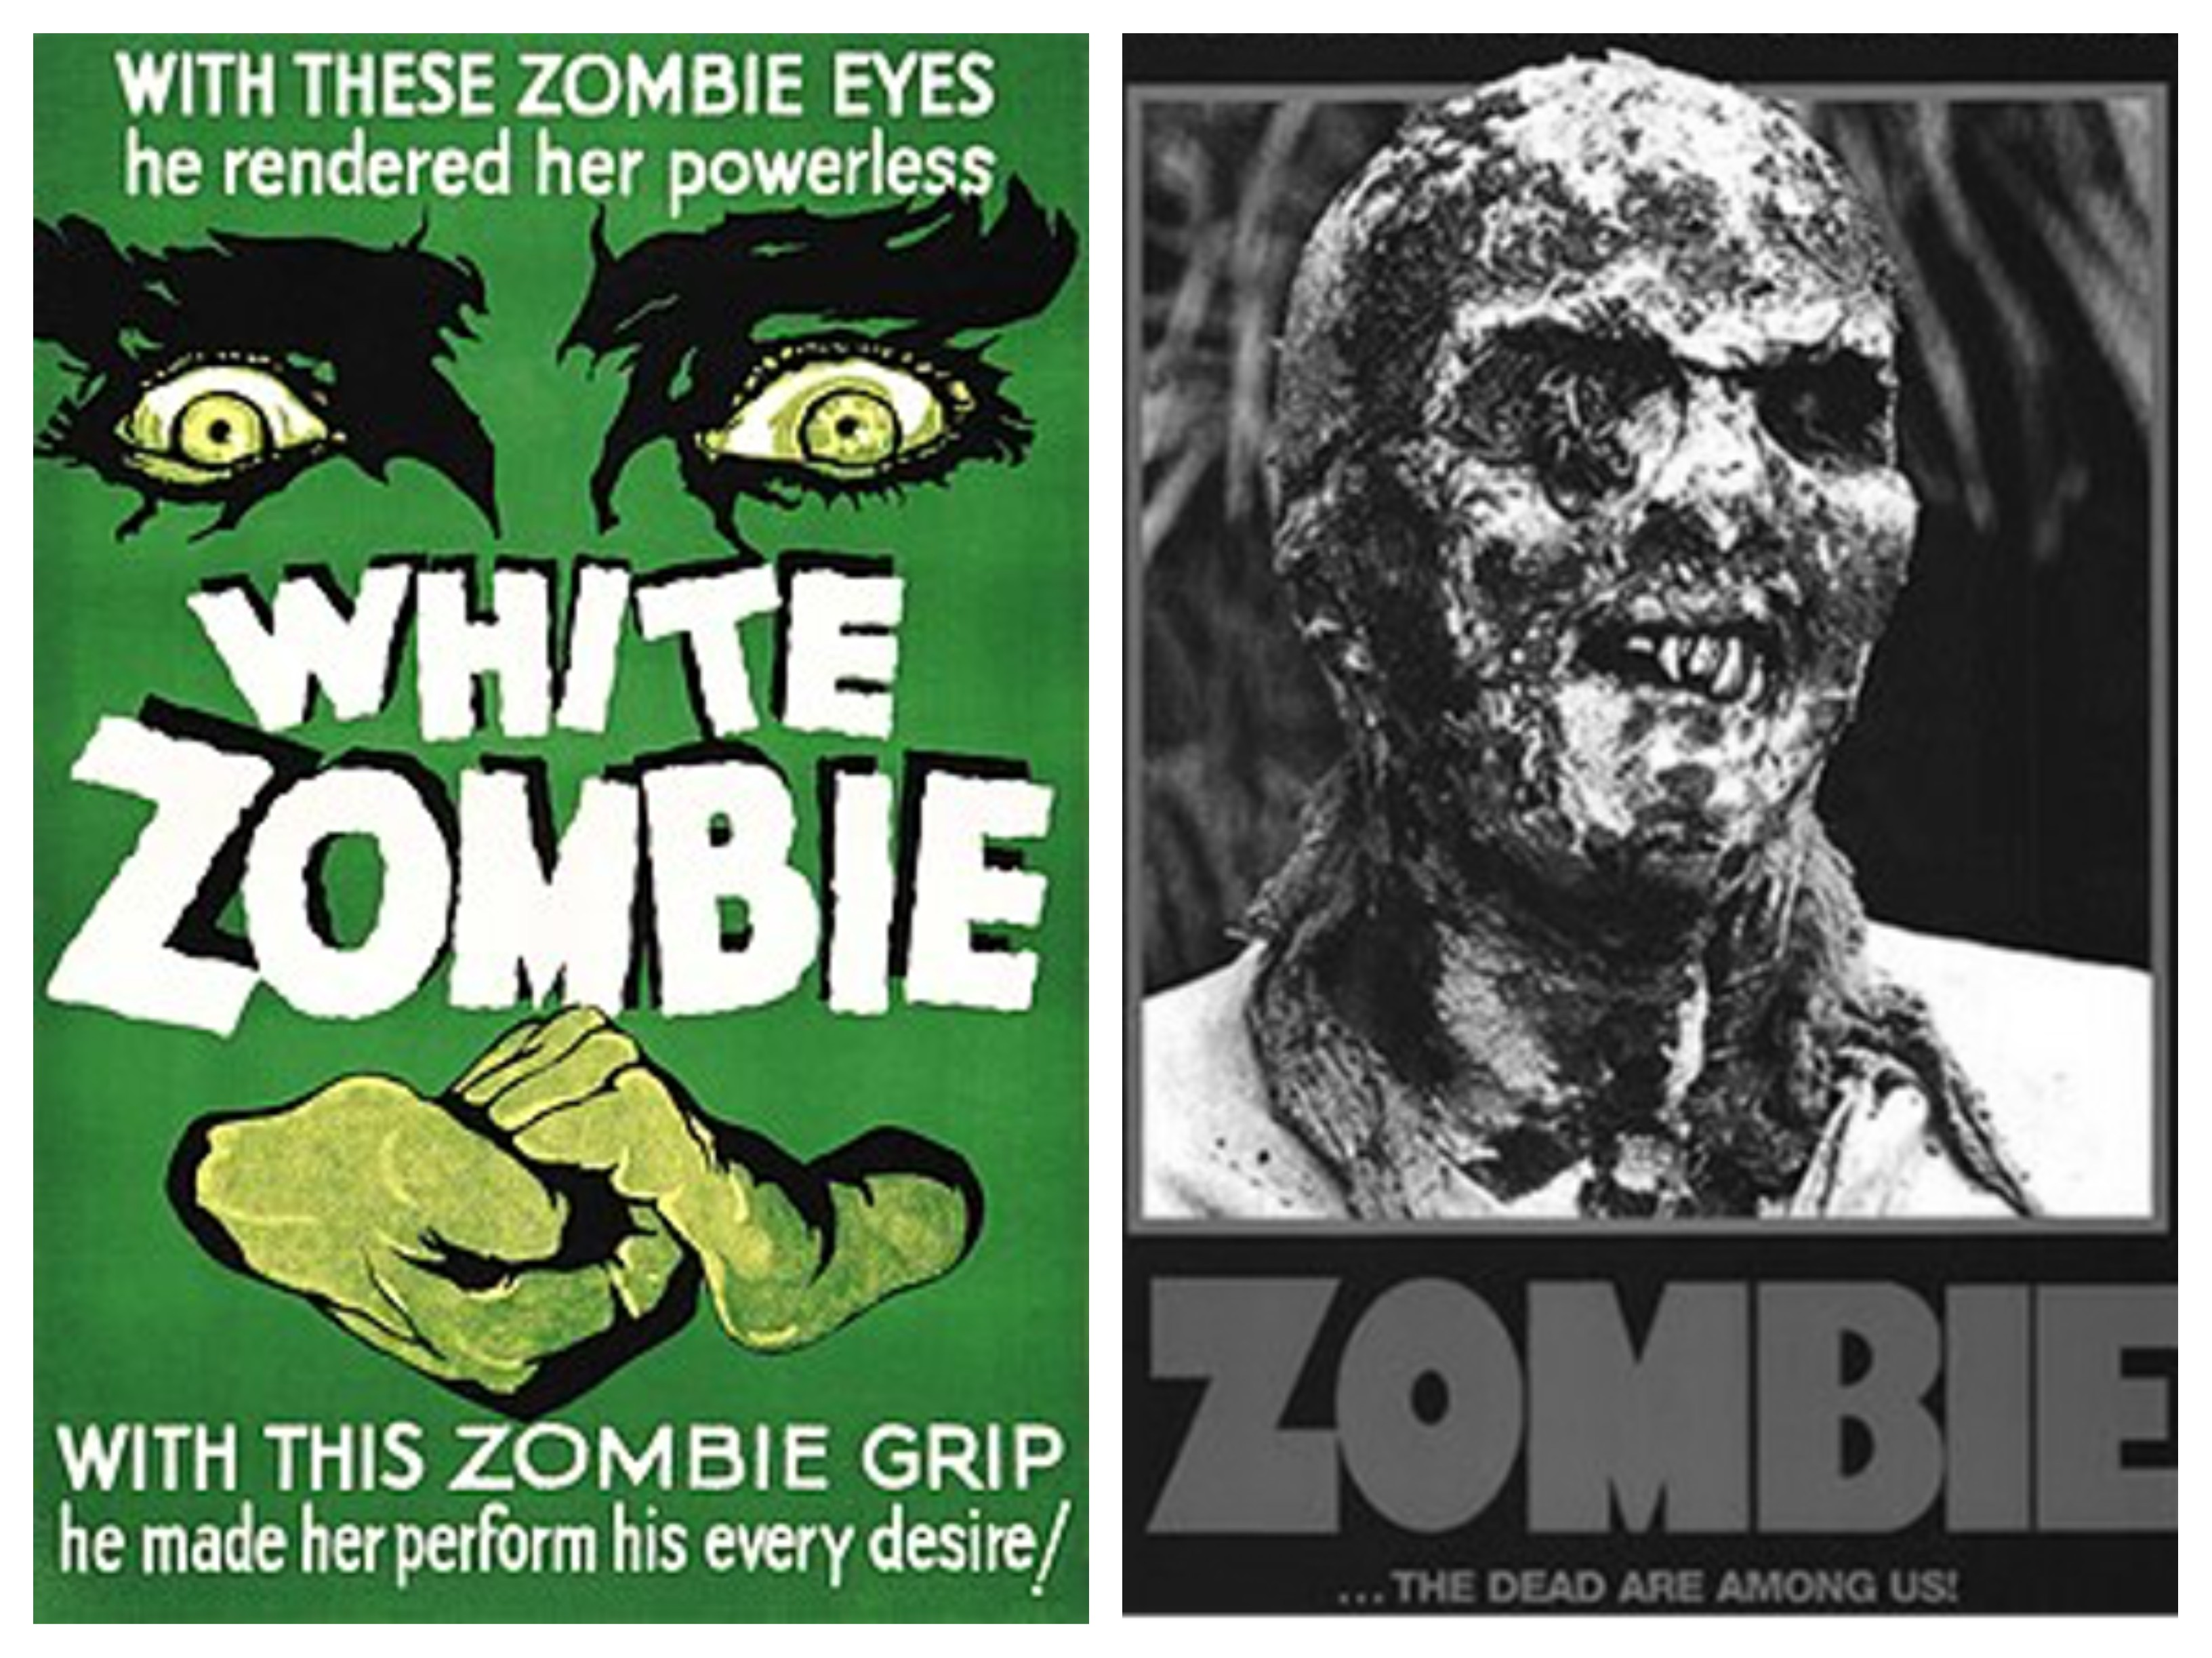 Austin Peay literature class explores the illuminating history of zombies in popular culture